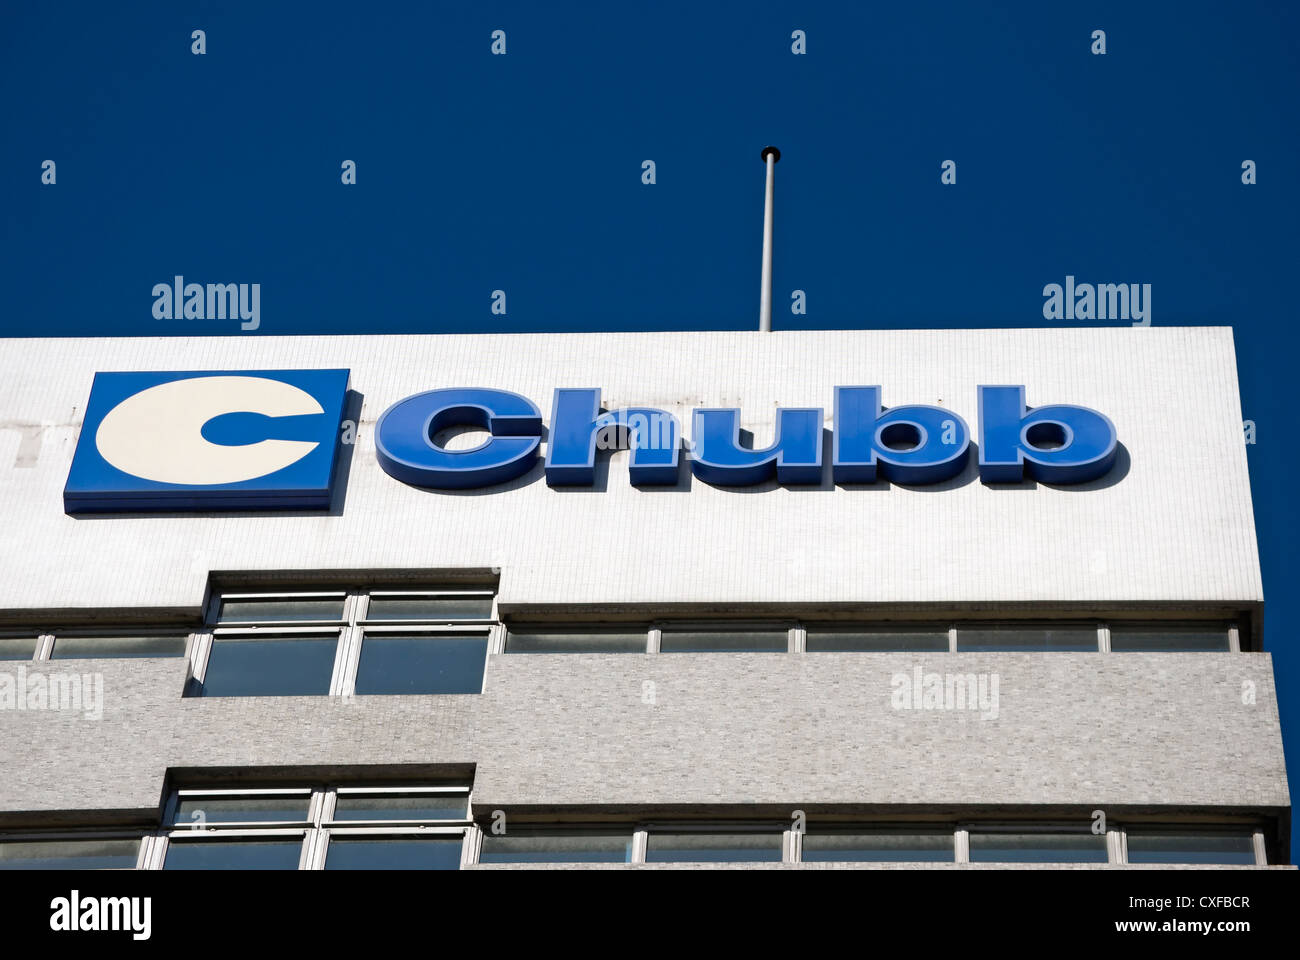 House Color Combination Chubb Stock Photos Amp Chubb Stock Images Alamy